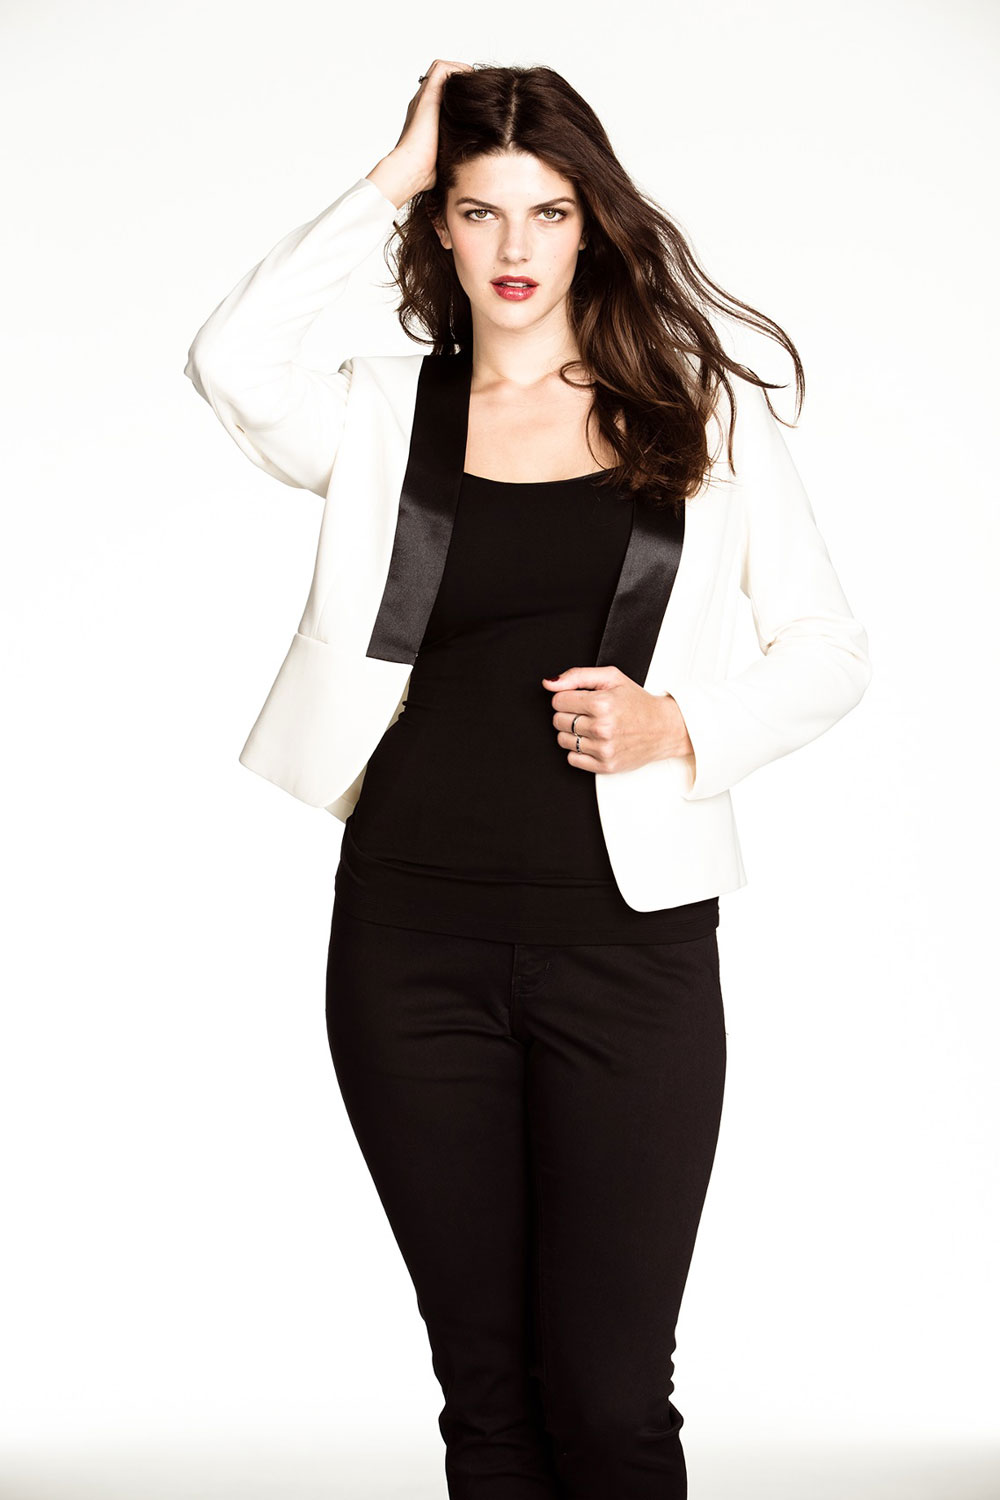 H m plus size: Target5% Off W/ REDcard· Same Day Store Pick-Up· Free Shipping $35+· Free ReturnsStyles: Jackets, Active wear, Maternity, Dresses, Jeans, Pants, Shirts, Shorts, Skirts.